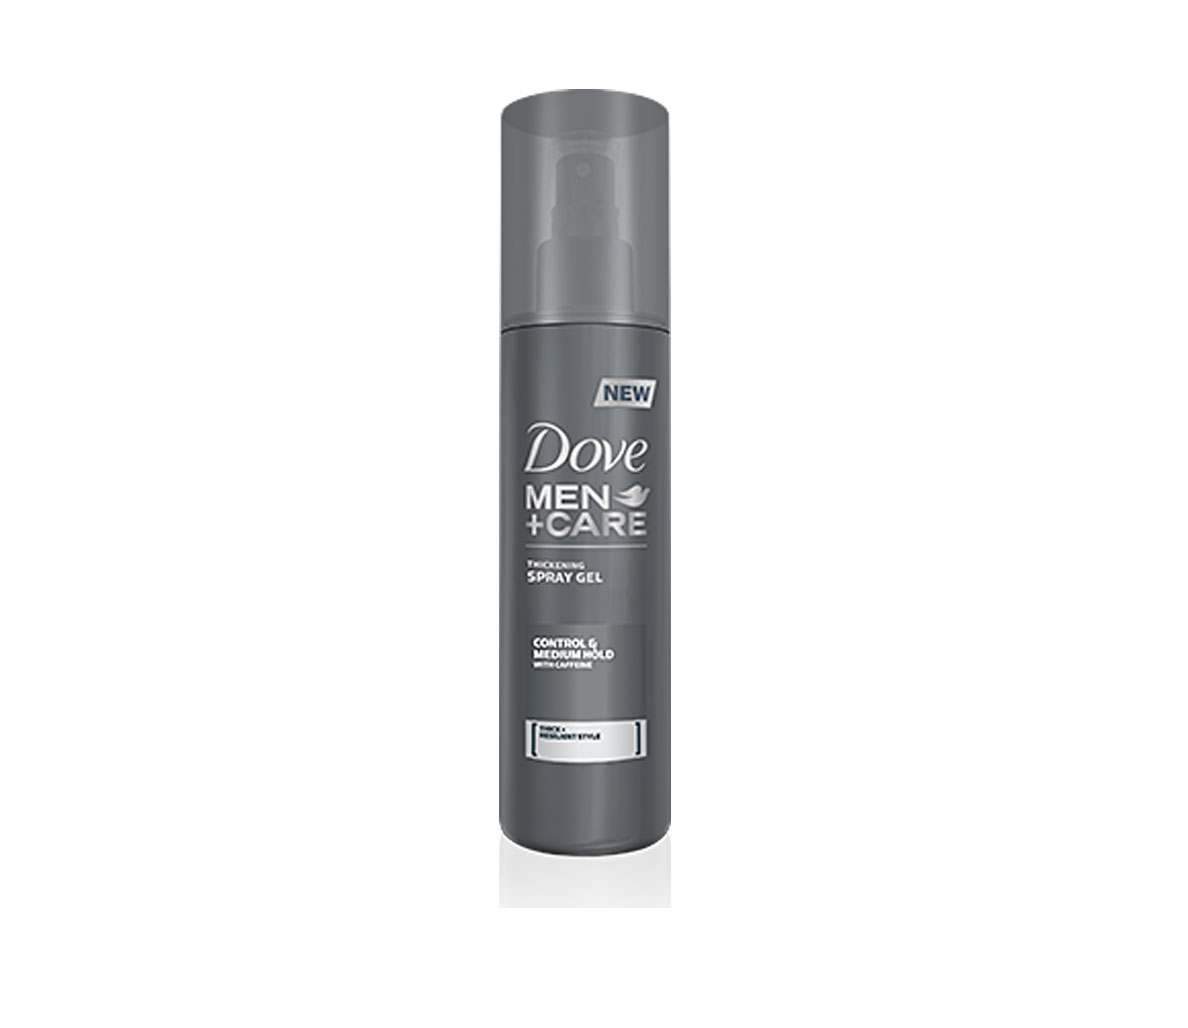 Dove Men+ Care Thickening Spray Gel